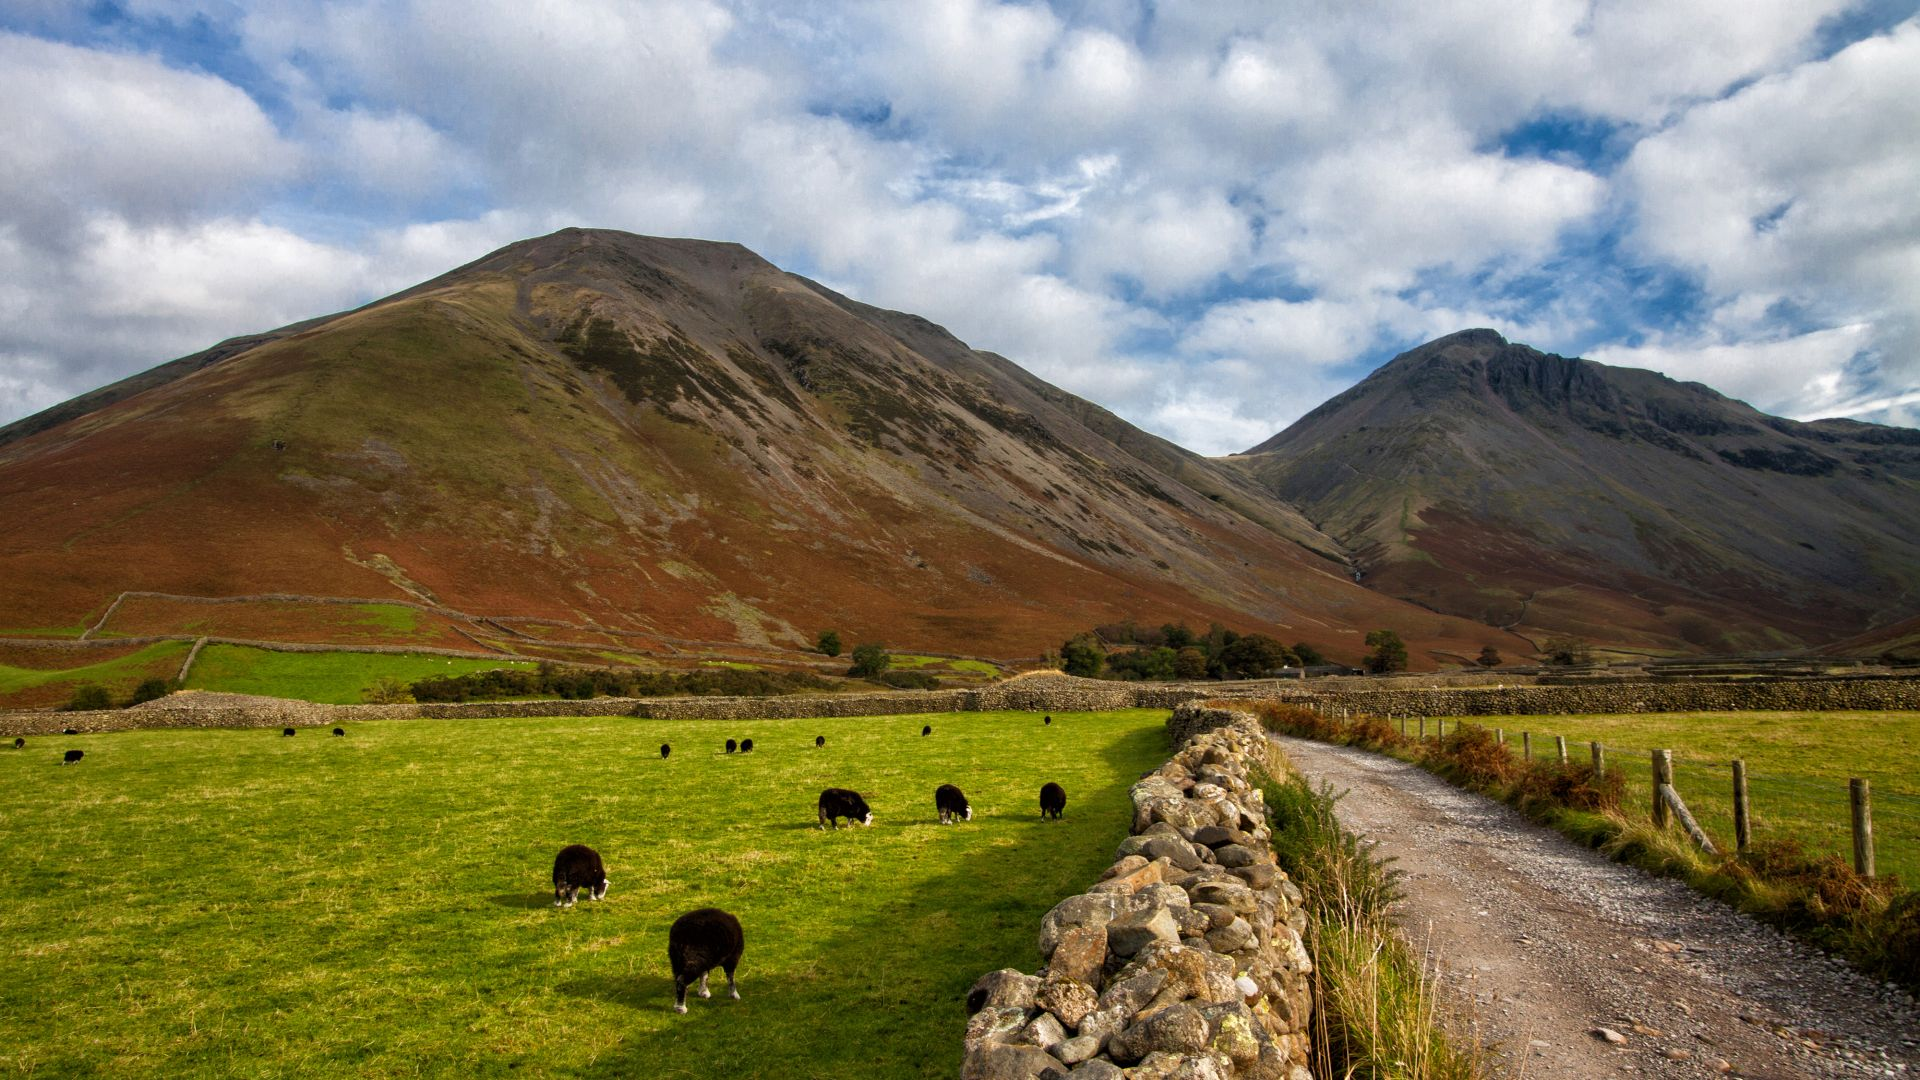 Lake District, 5k, 4k wallpaper, National Park, Cumbria, England, hills, meadows, goats (horizontal)